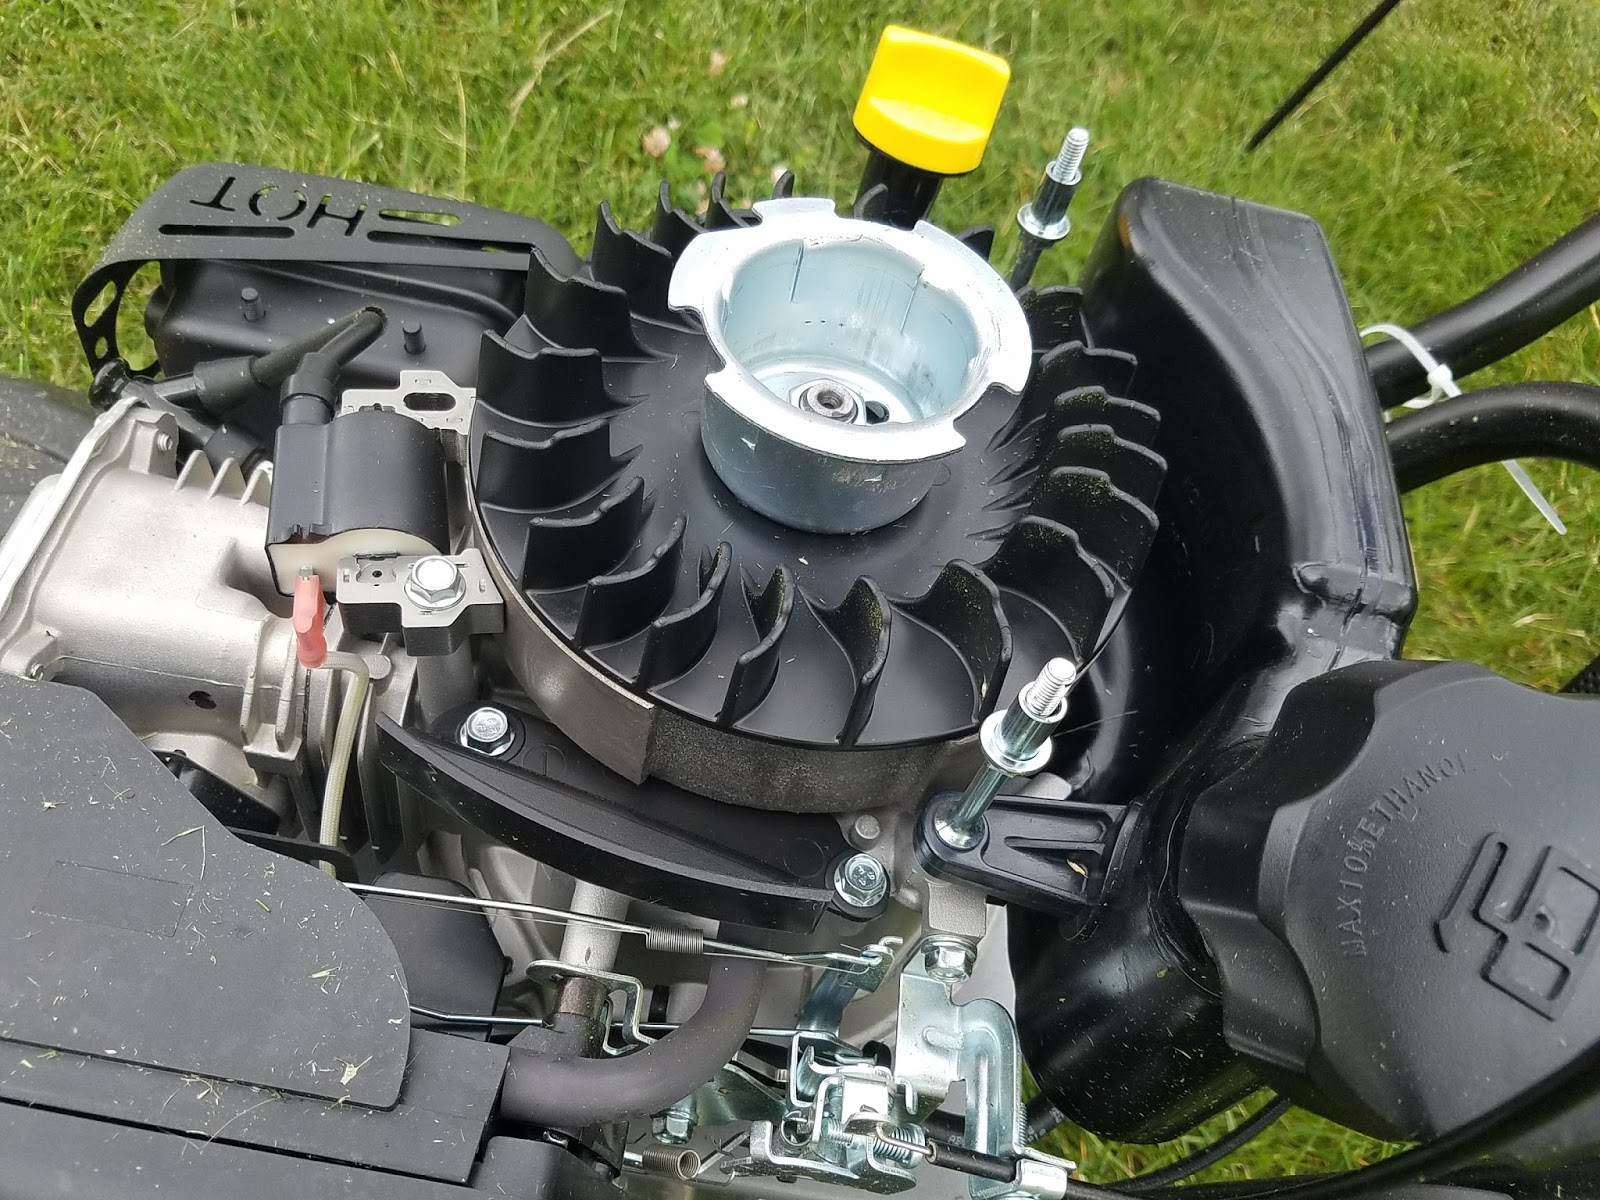 How To Unseize A Motor - Newletterjdi co